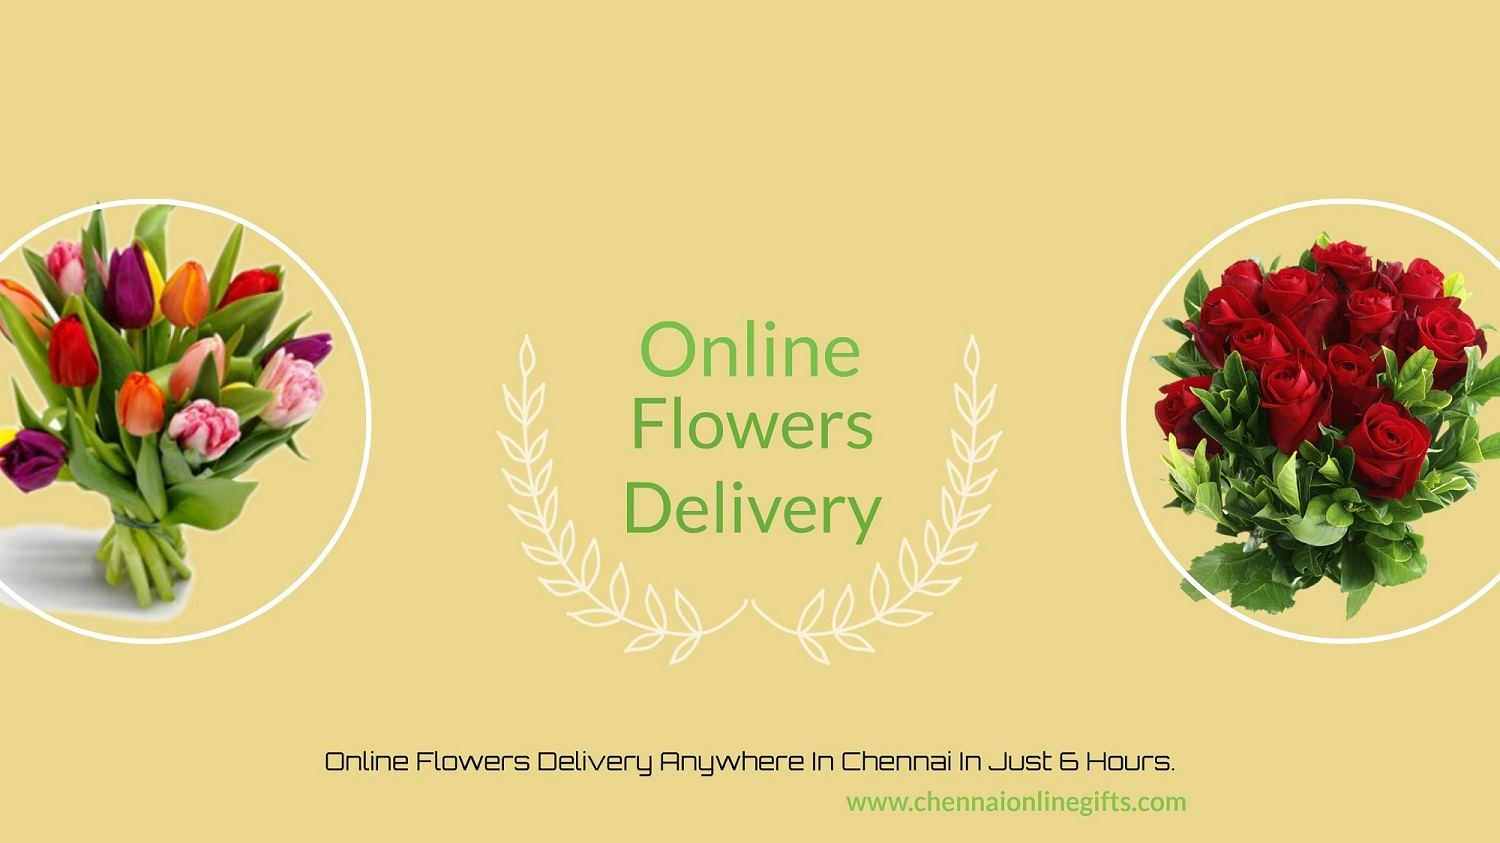 Convenient And Faster Flowers Delivery In Chennai By Chennai Online